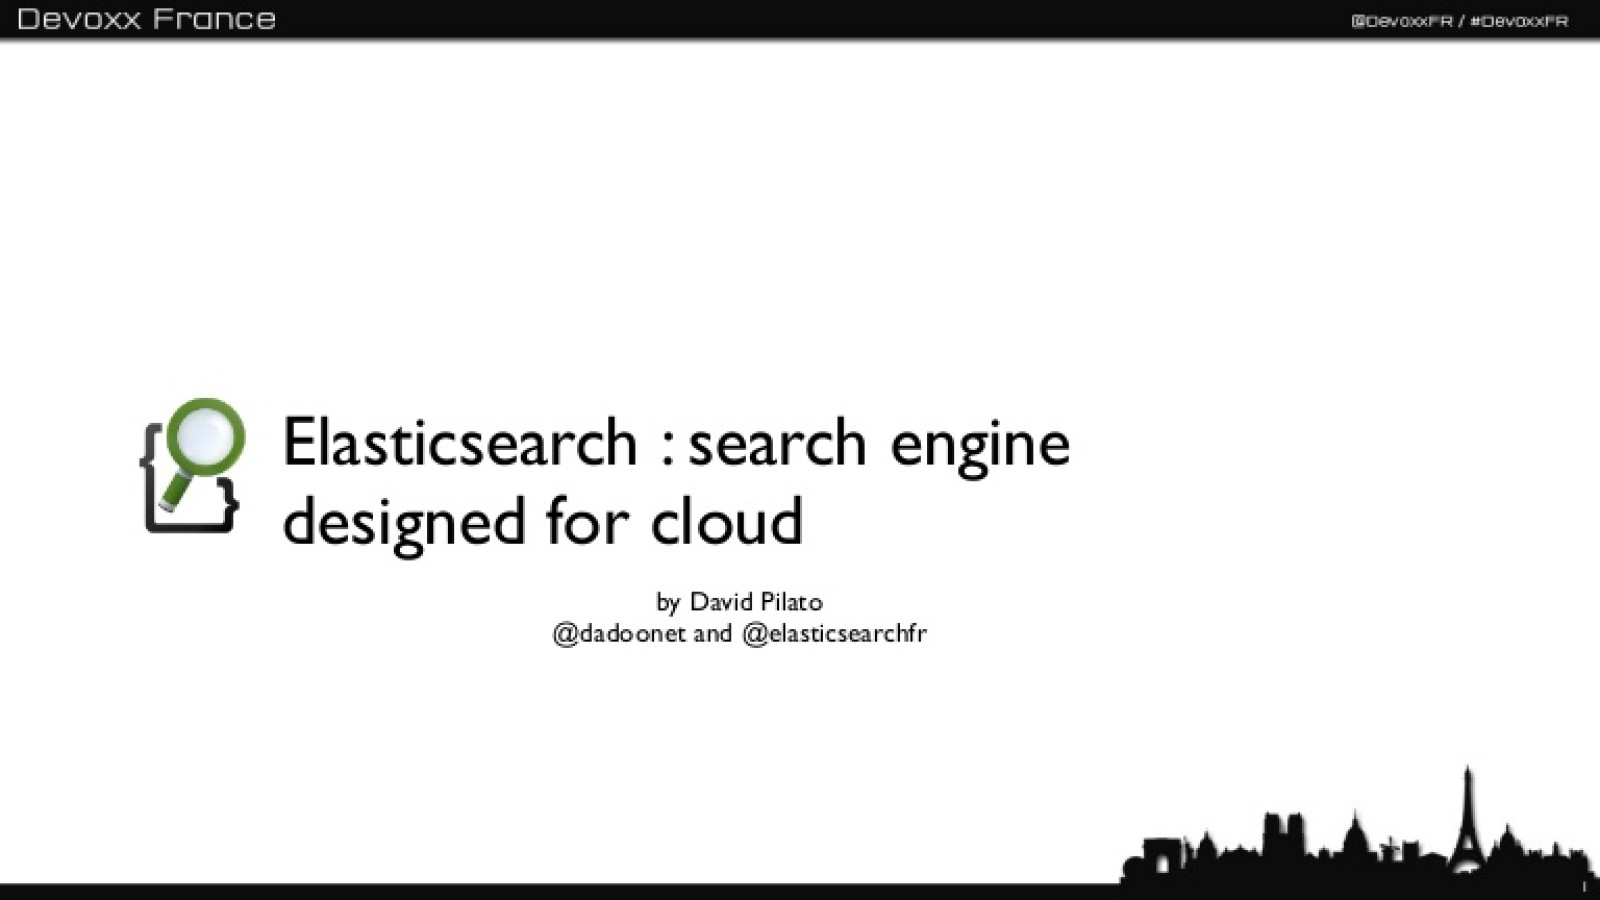 Elasticsearch - Devoxx France 2012 - English version